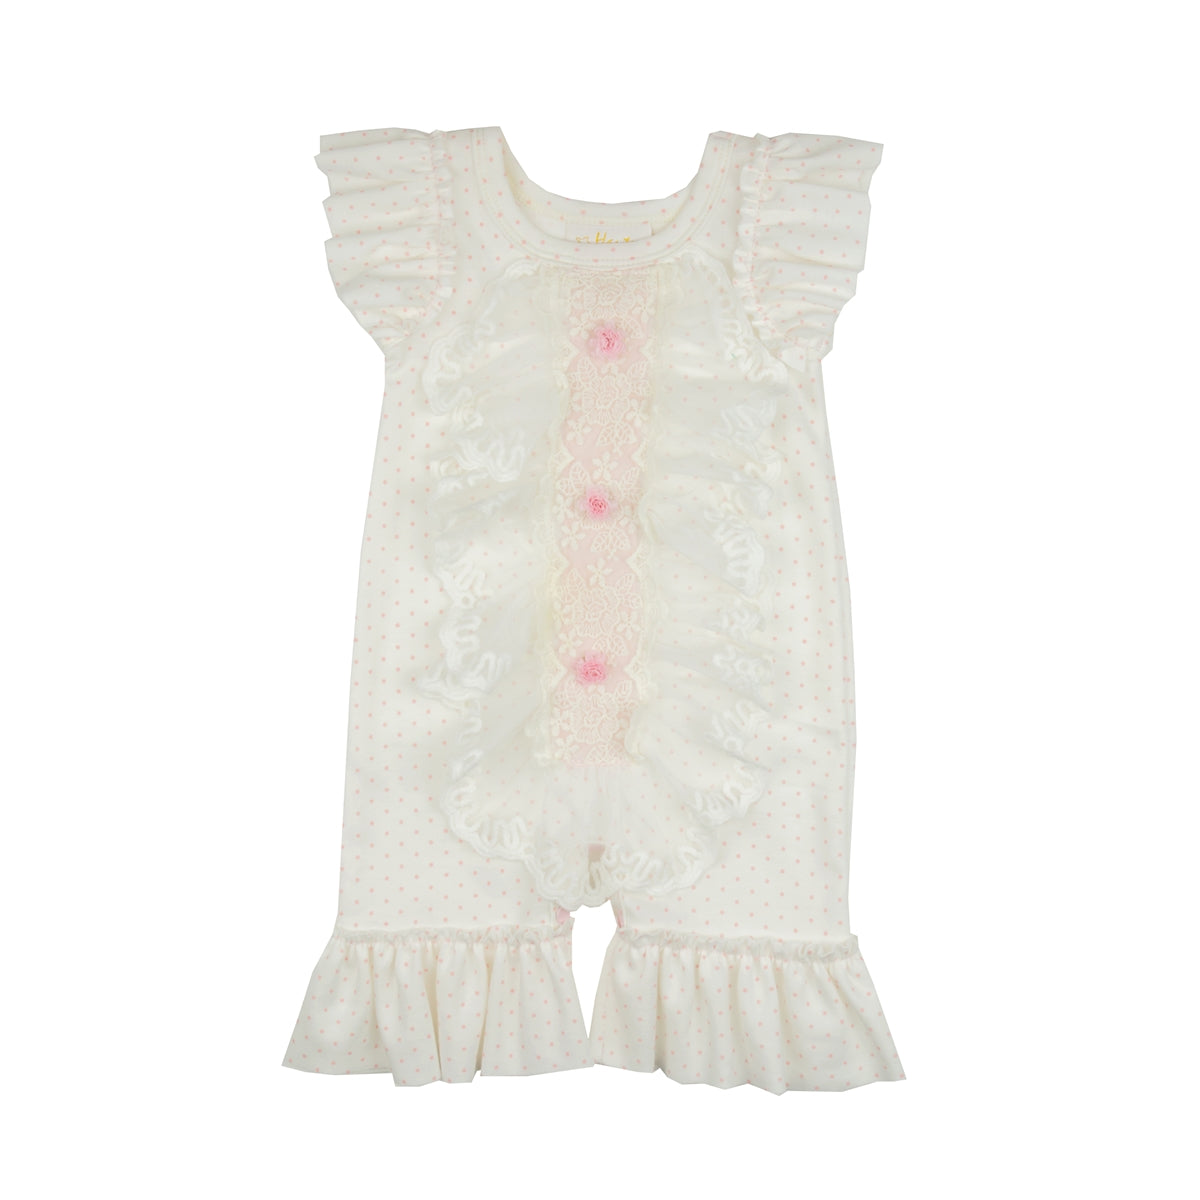 Cuddle Me Baby Romper HB_SCM04 - Nenes Lullaby Boutique Inc